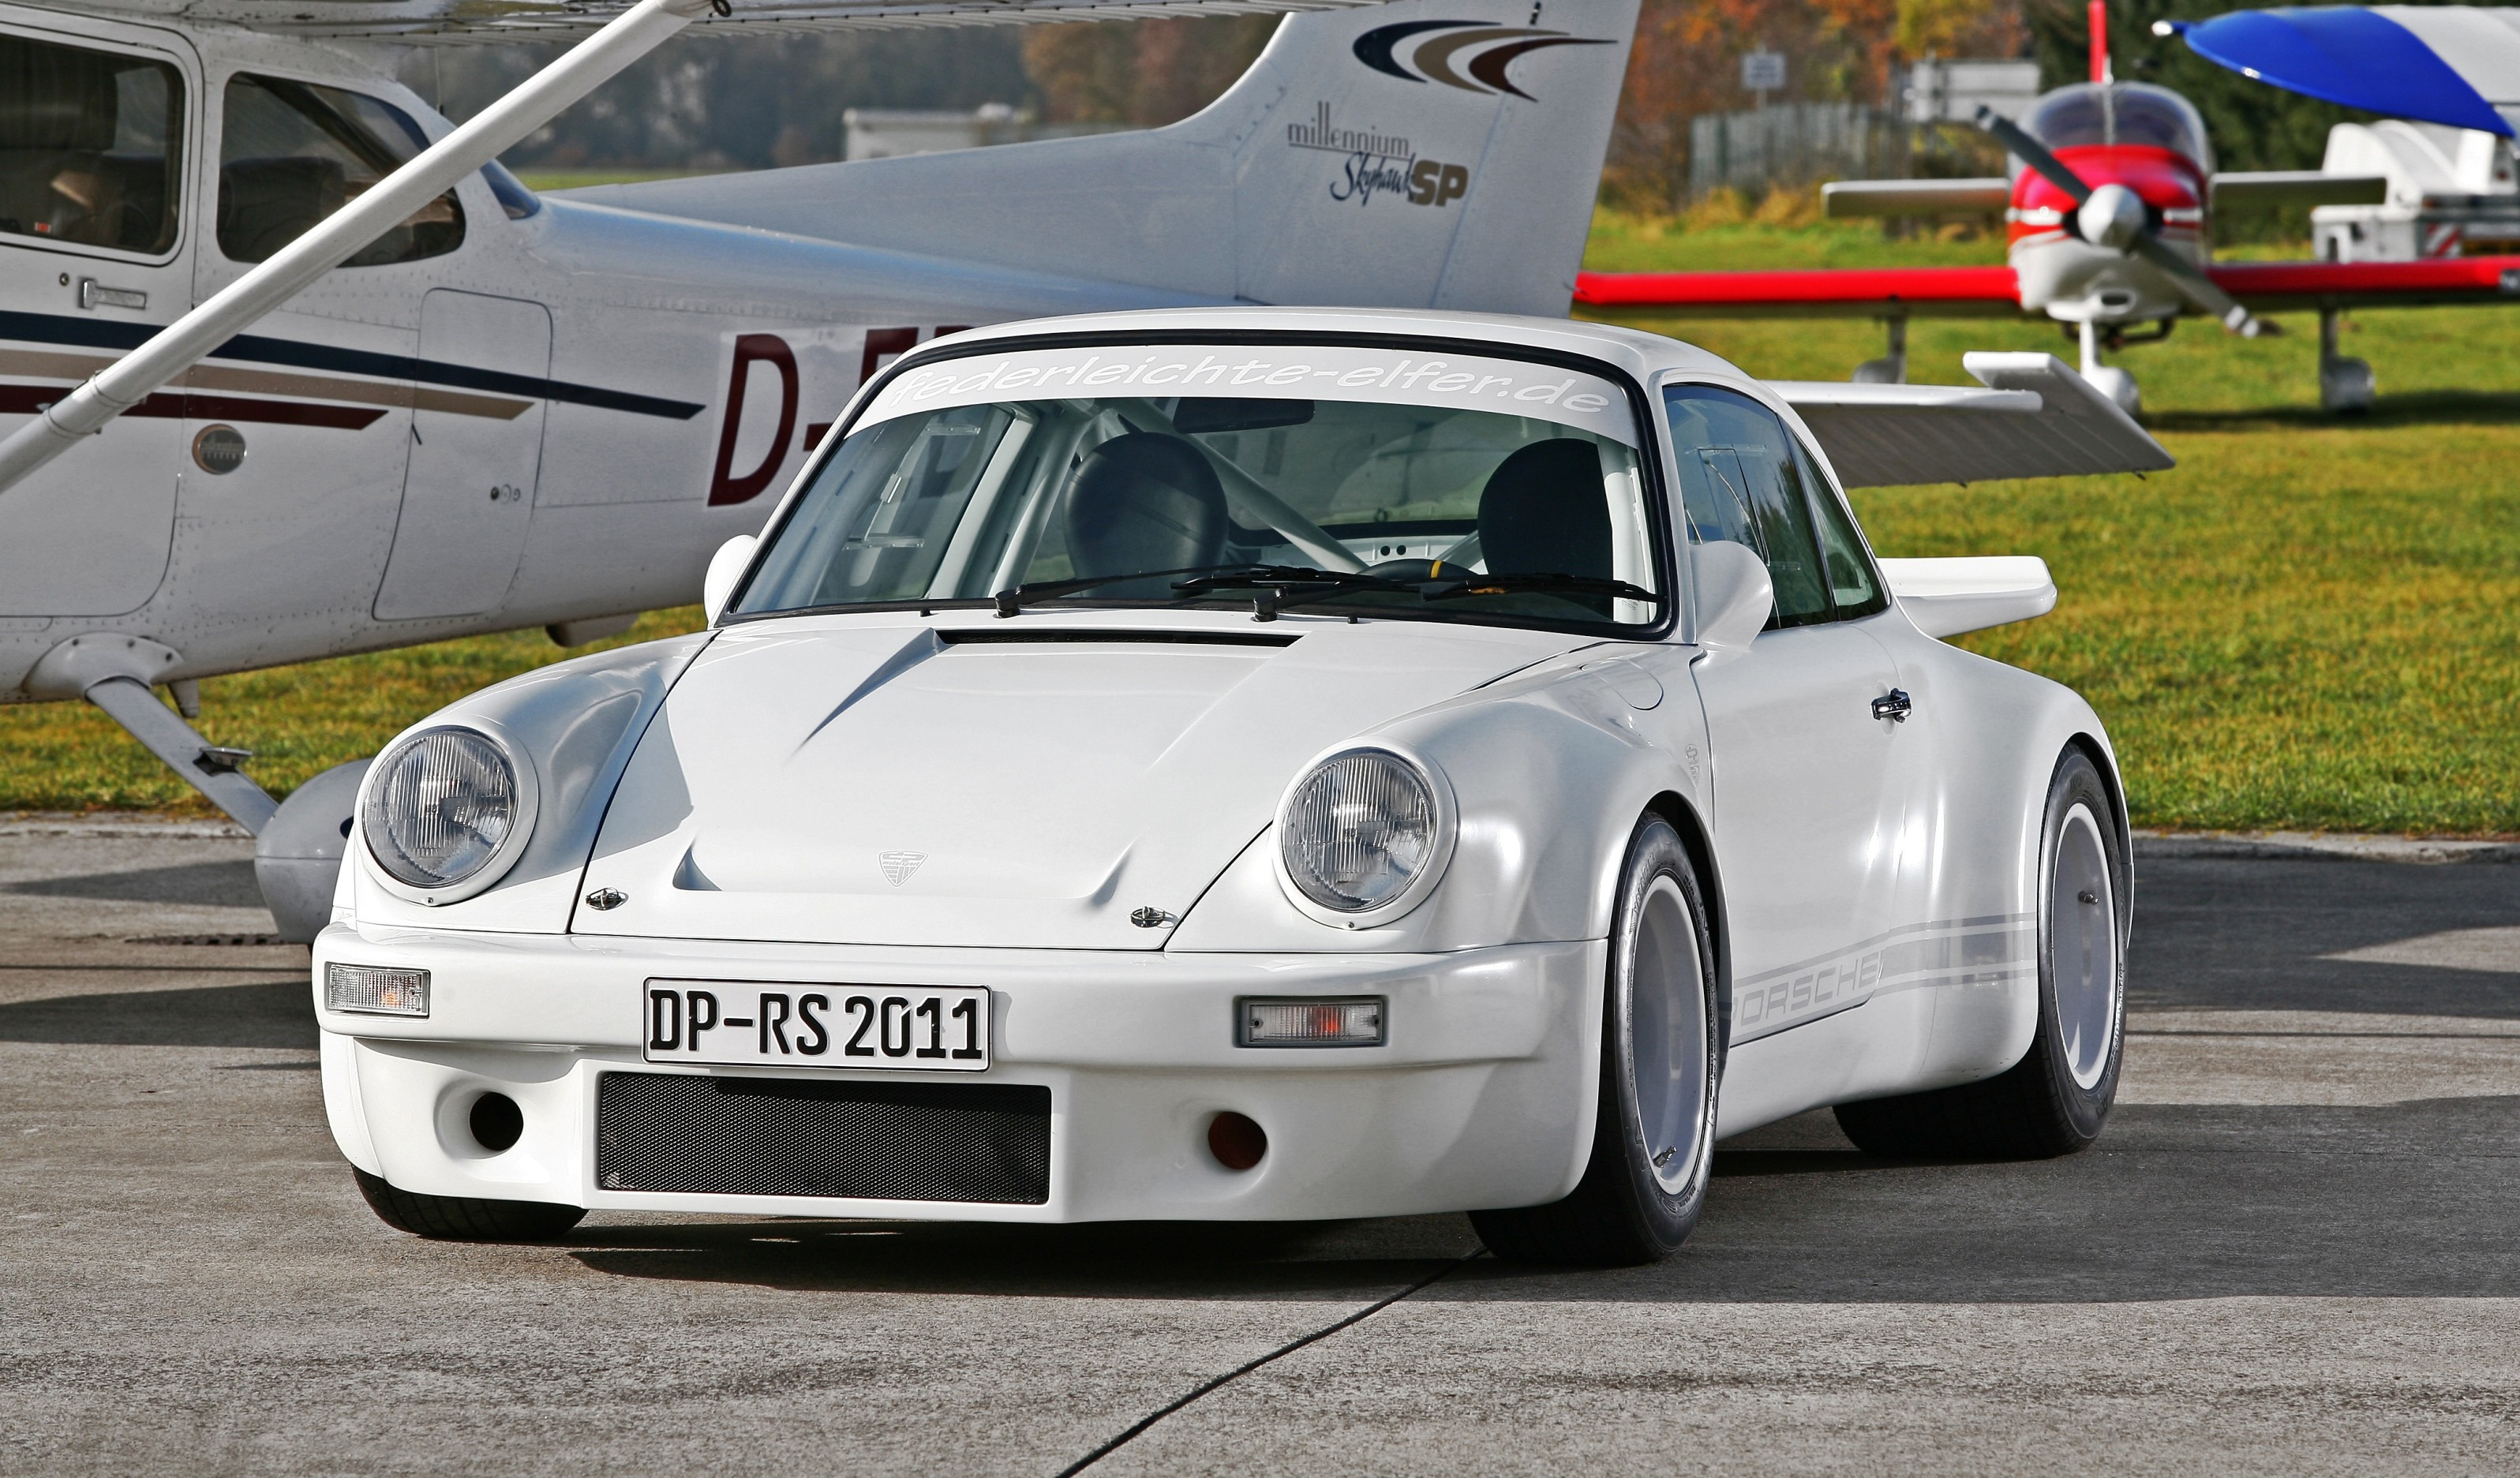 1973 Porsche 911 Lightweight Carbon Widebody By Dp Motorsport 310hp For Only 2 000 Lbs Car Revs Daily Com